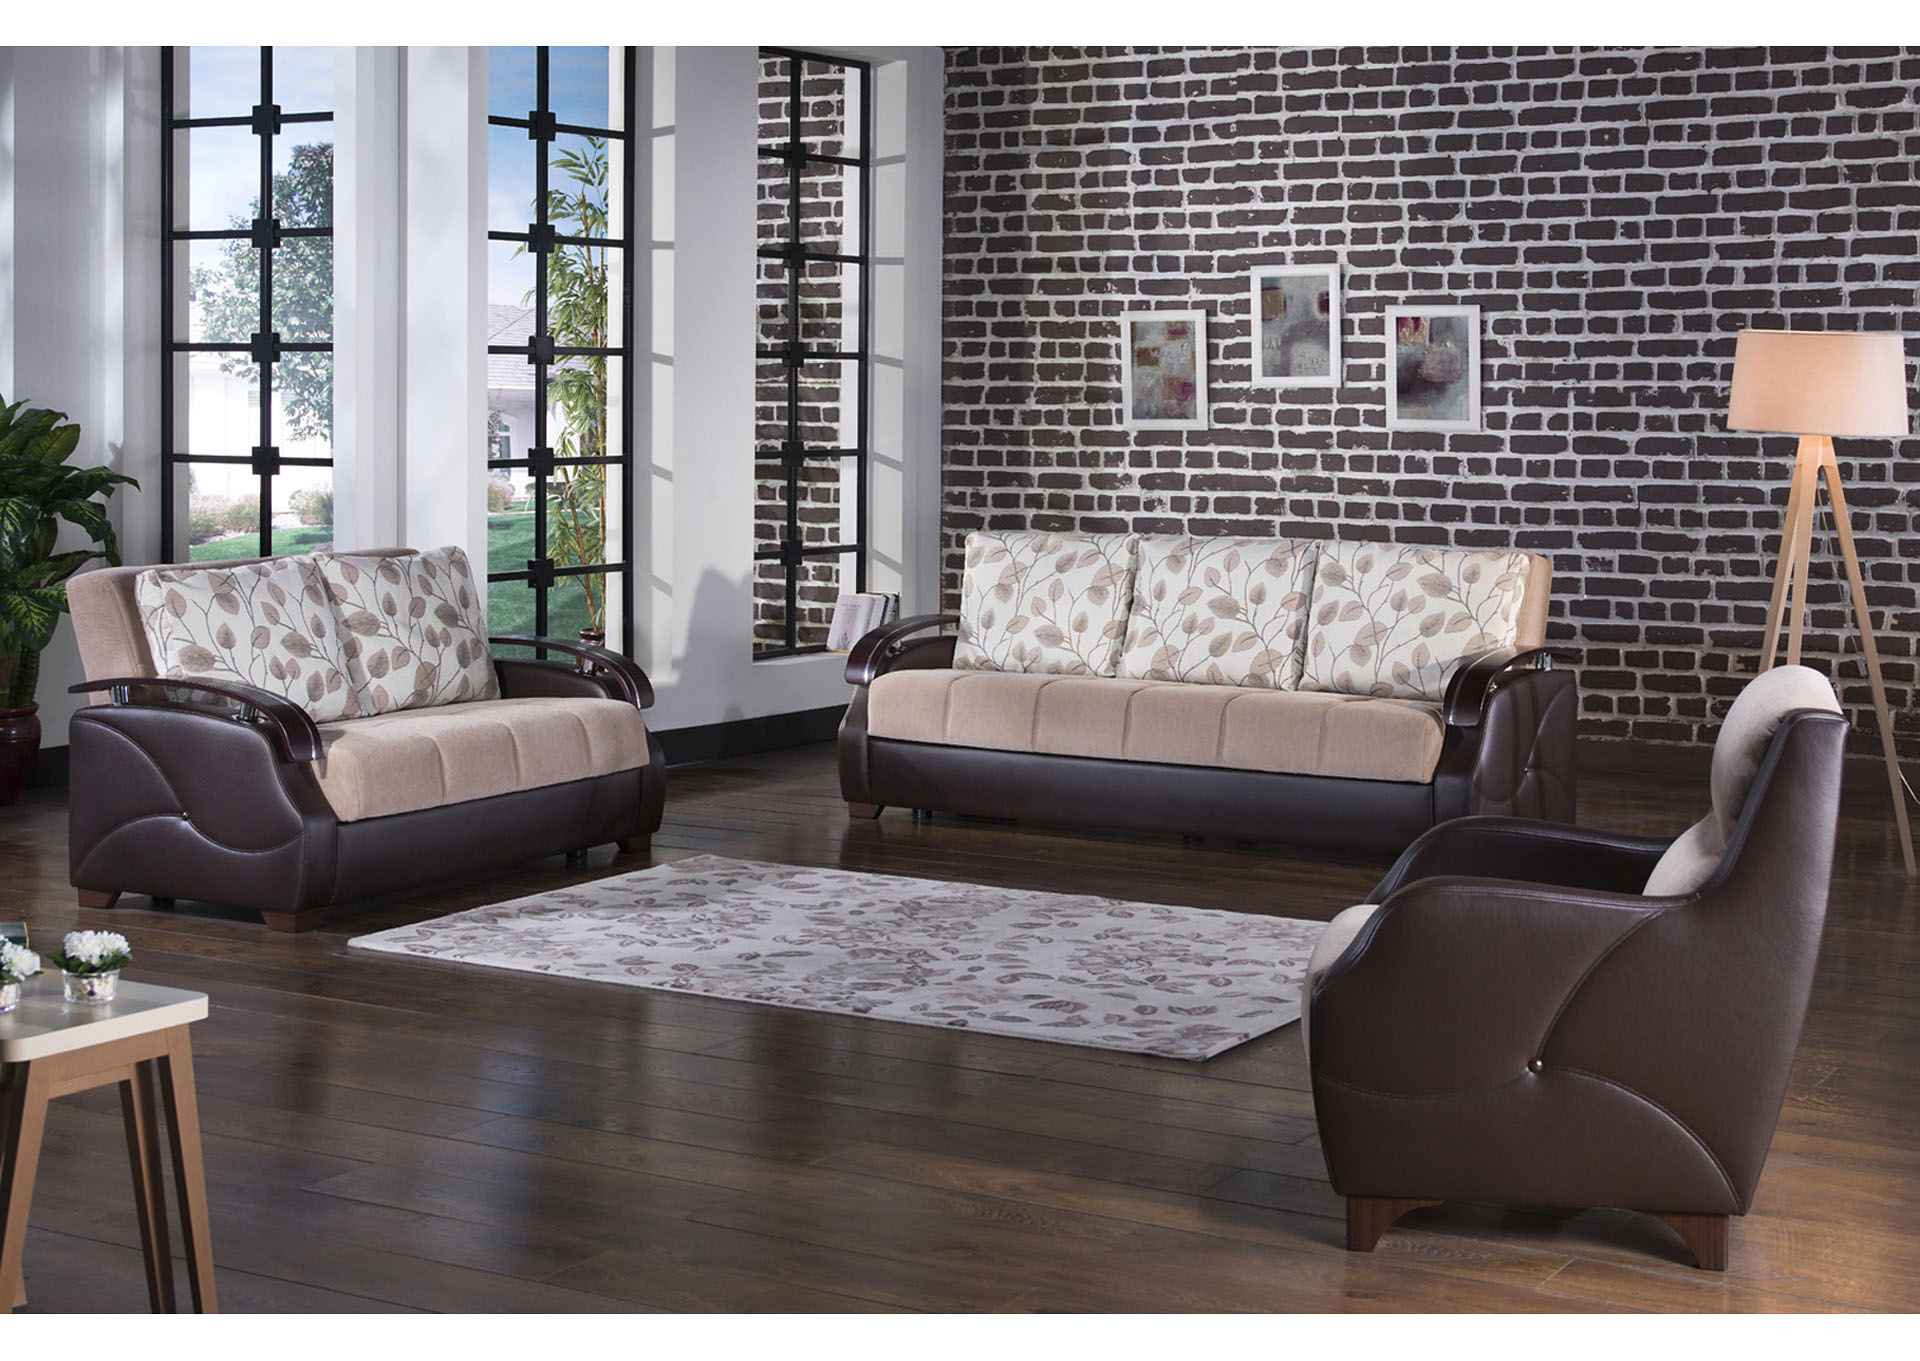 Costa Armoni Vizon 3 Piece Sofa Set,Hudson Furniture & Bedding